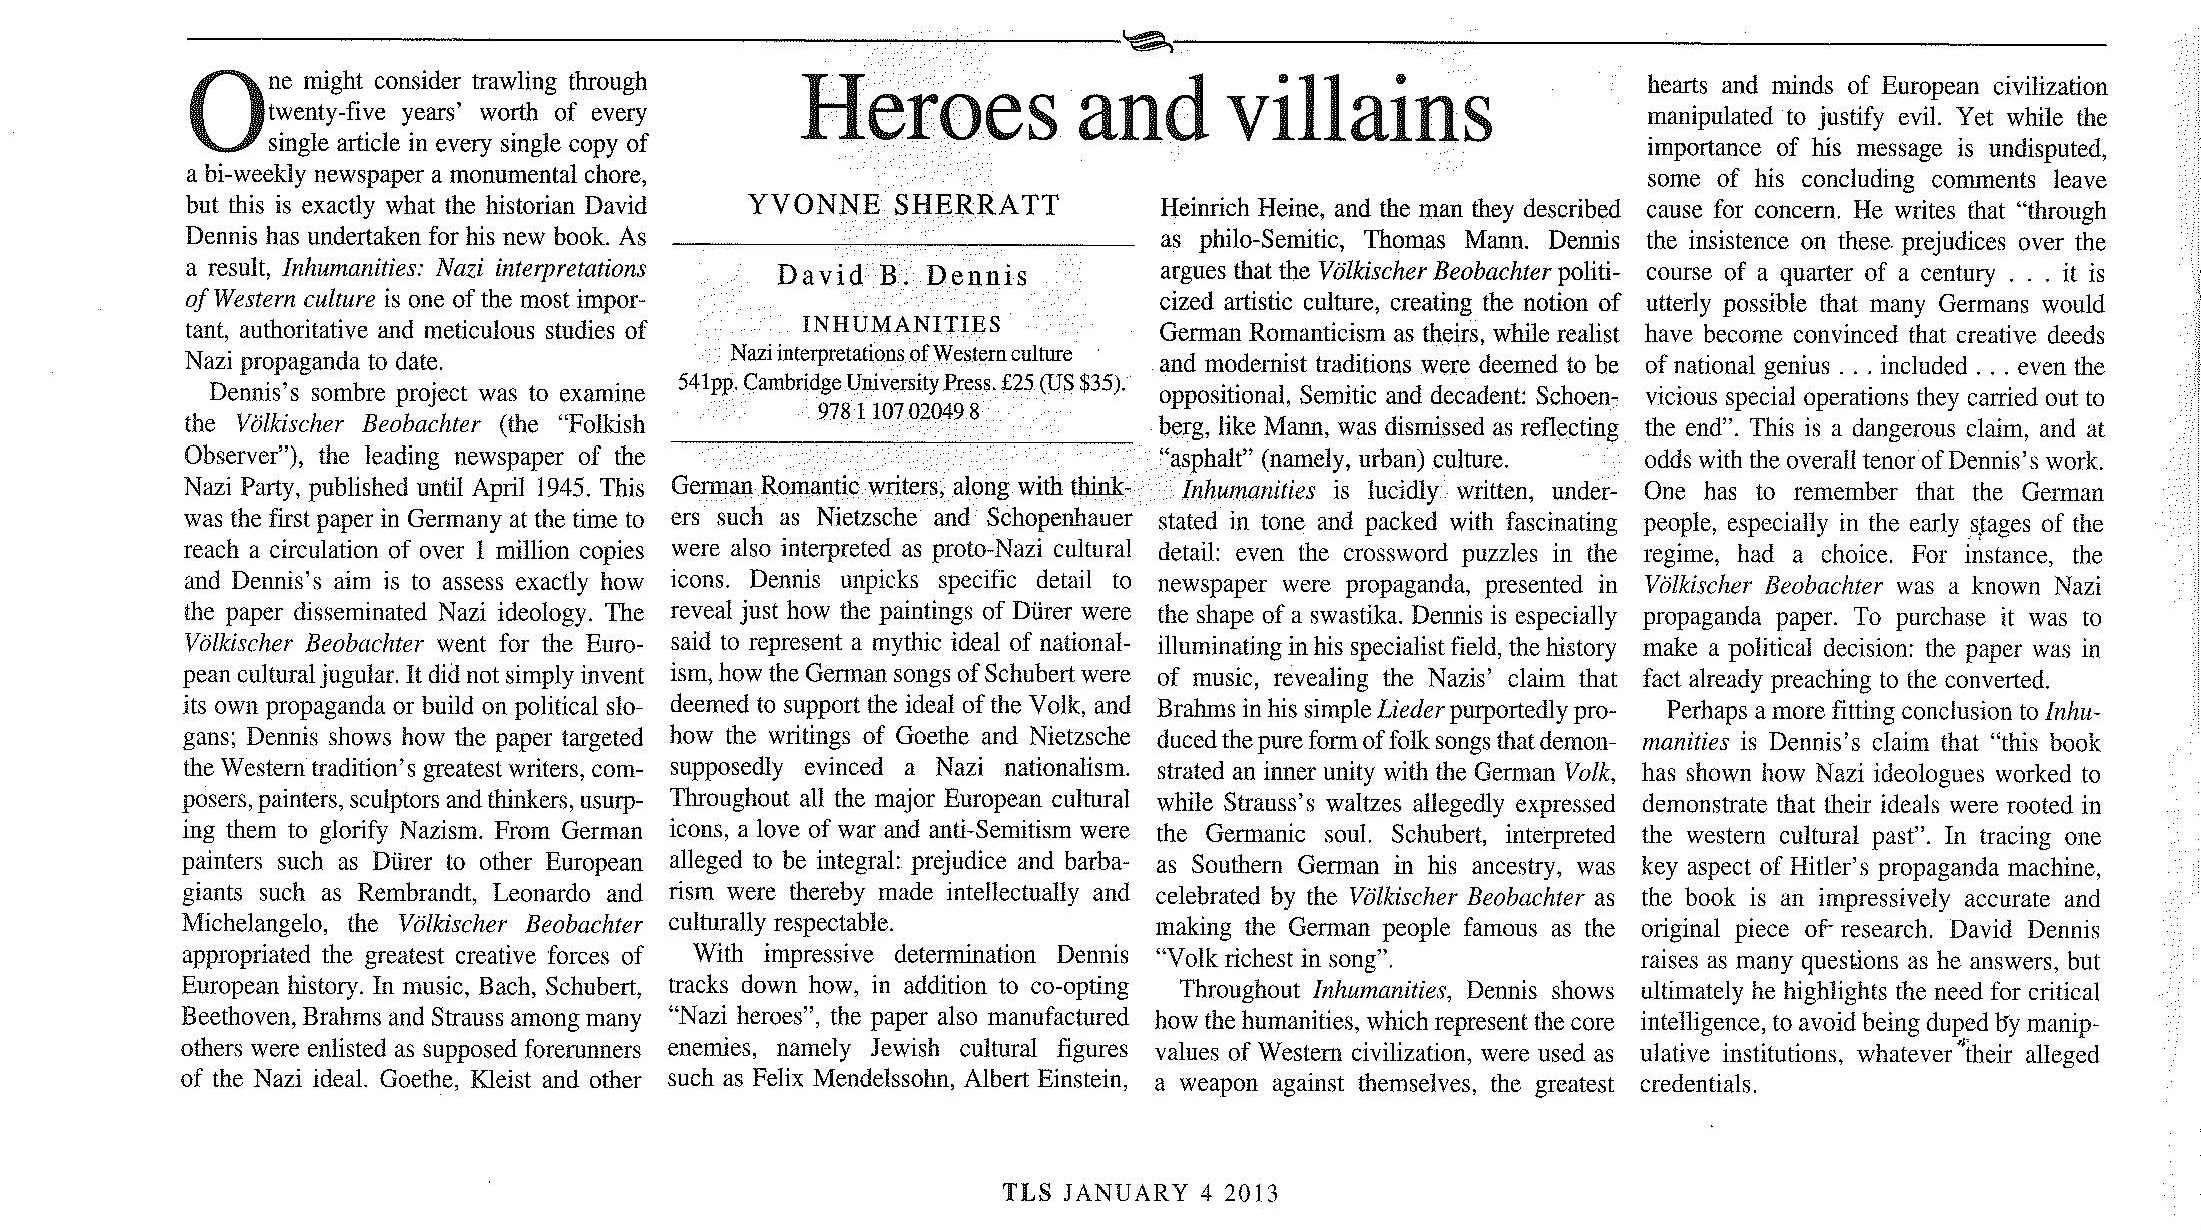 Inhumanities Review in the TLS (2012-01-04)-scanned from paper